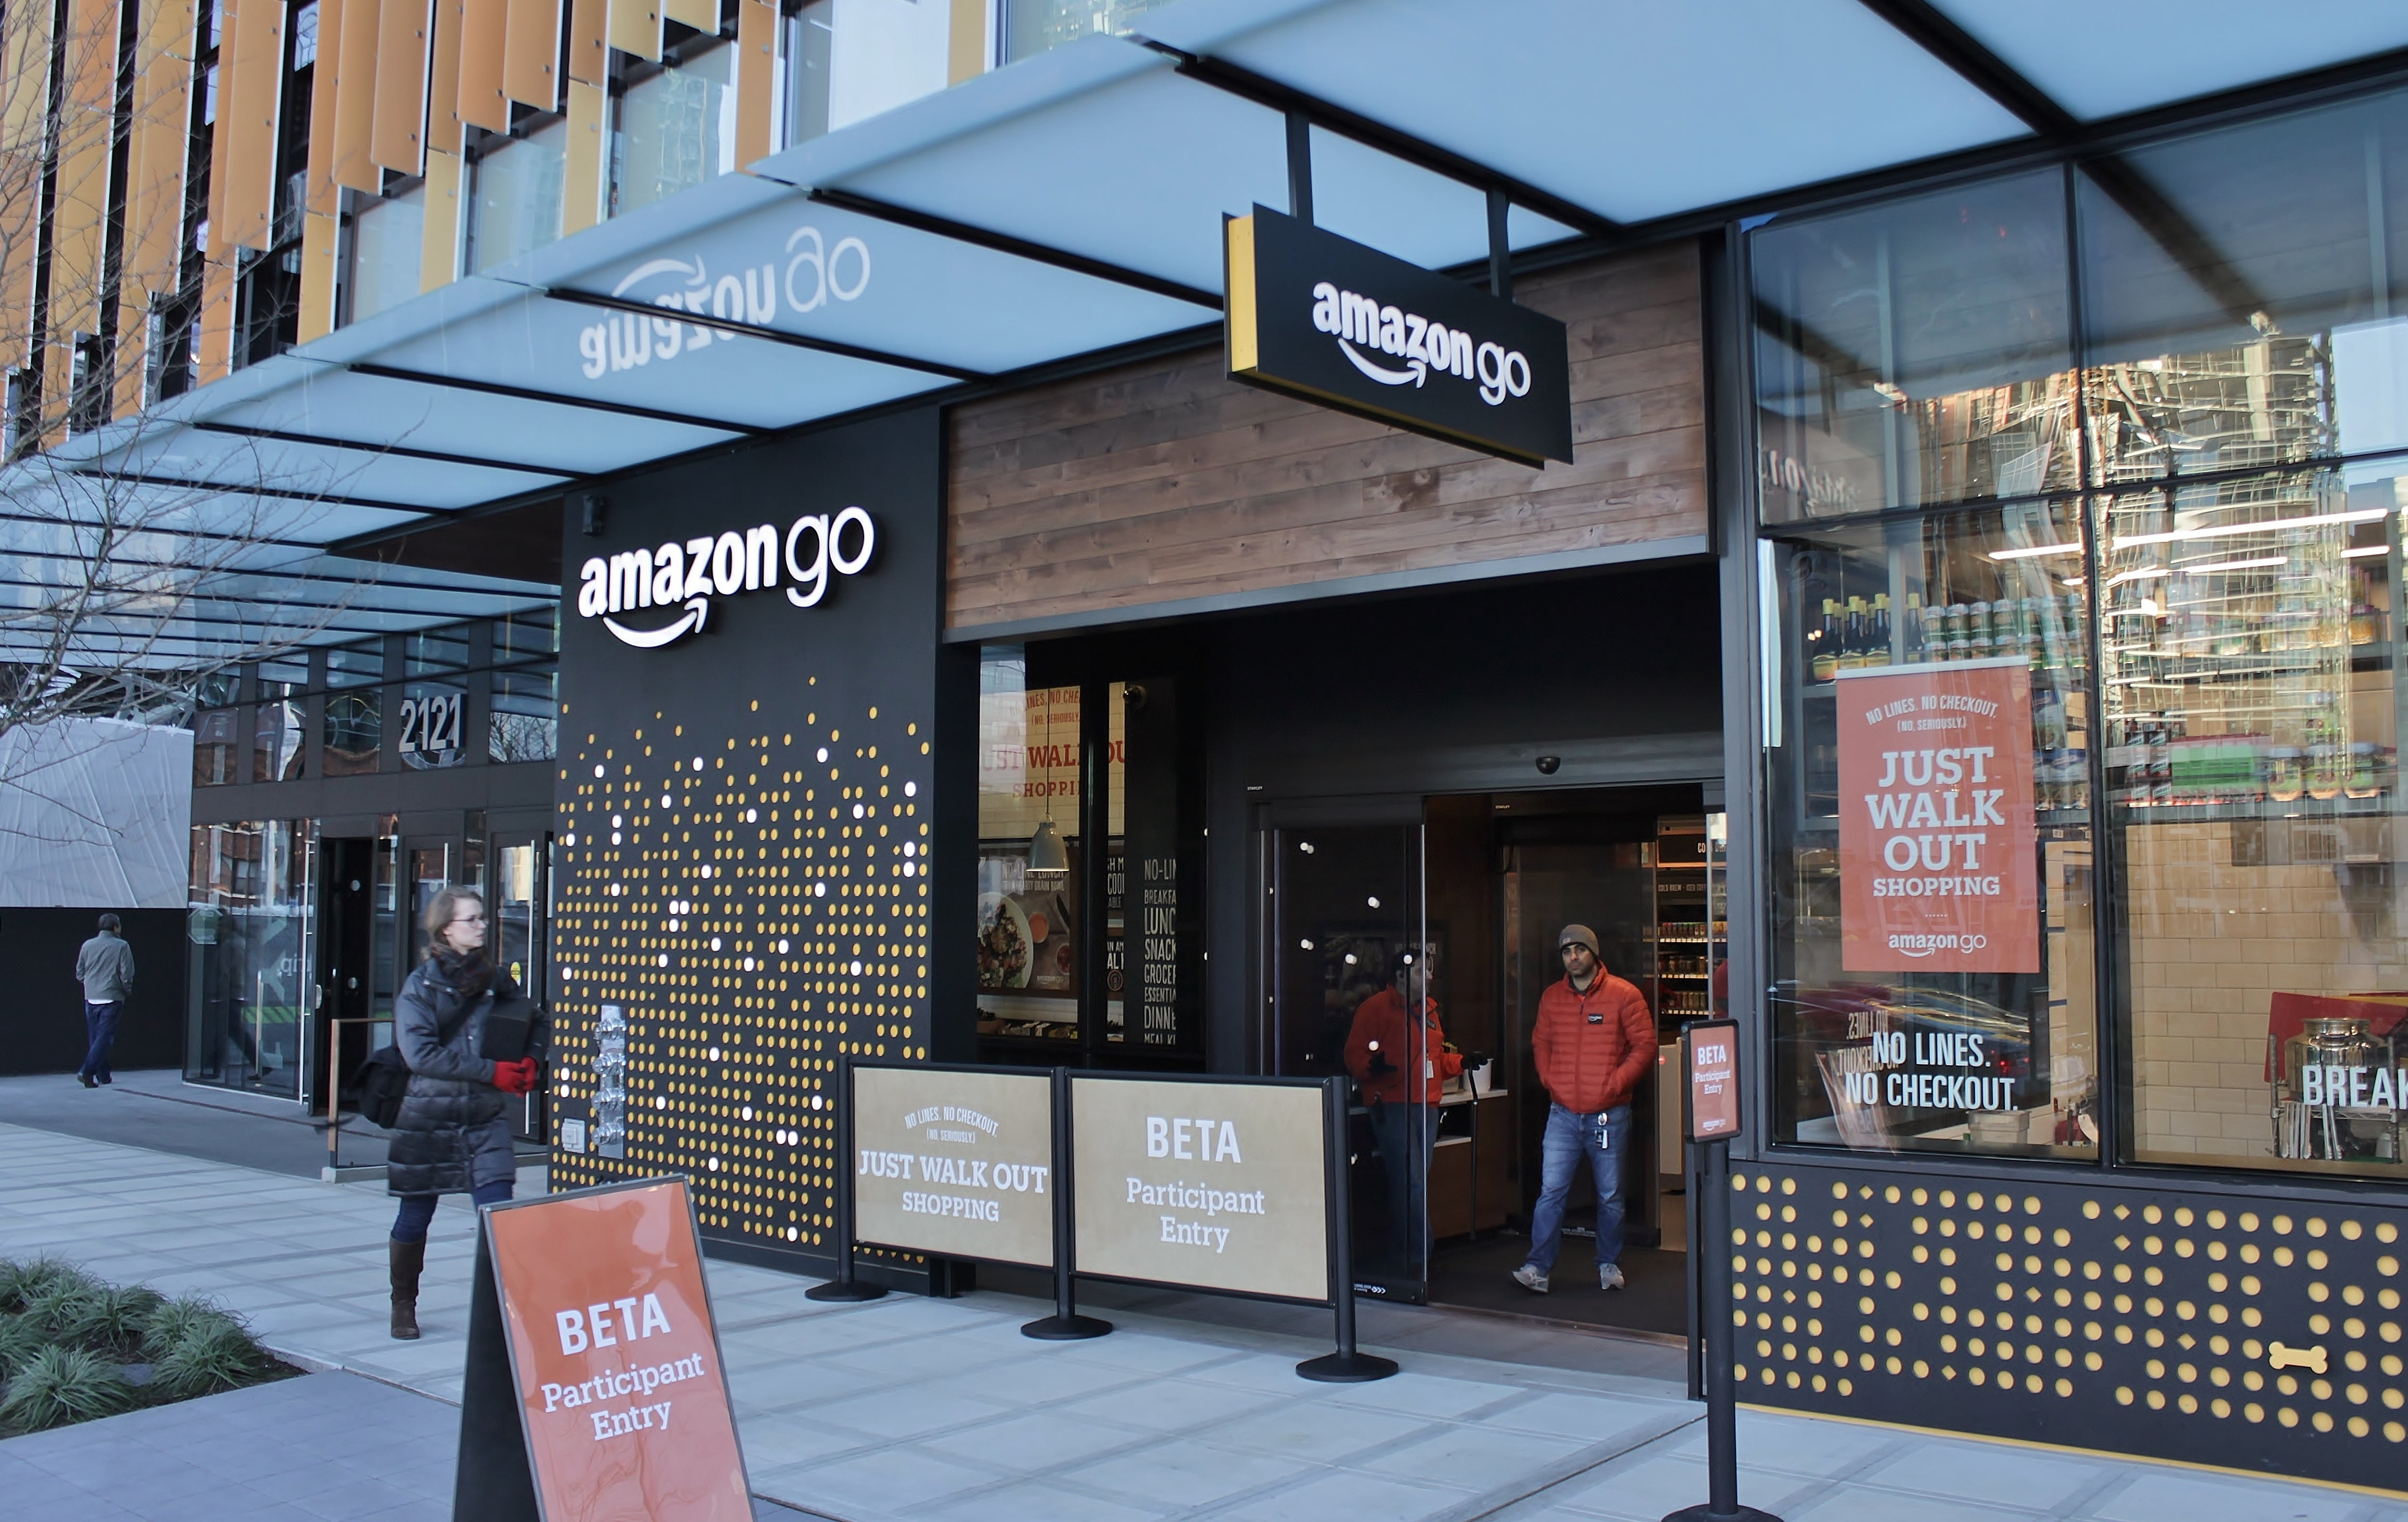 Amazon Go expansion plans will see airport snacks fly off the shelves | Trusted Reviews